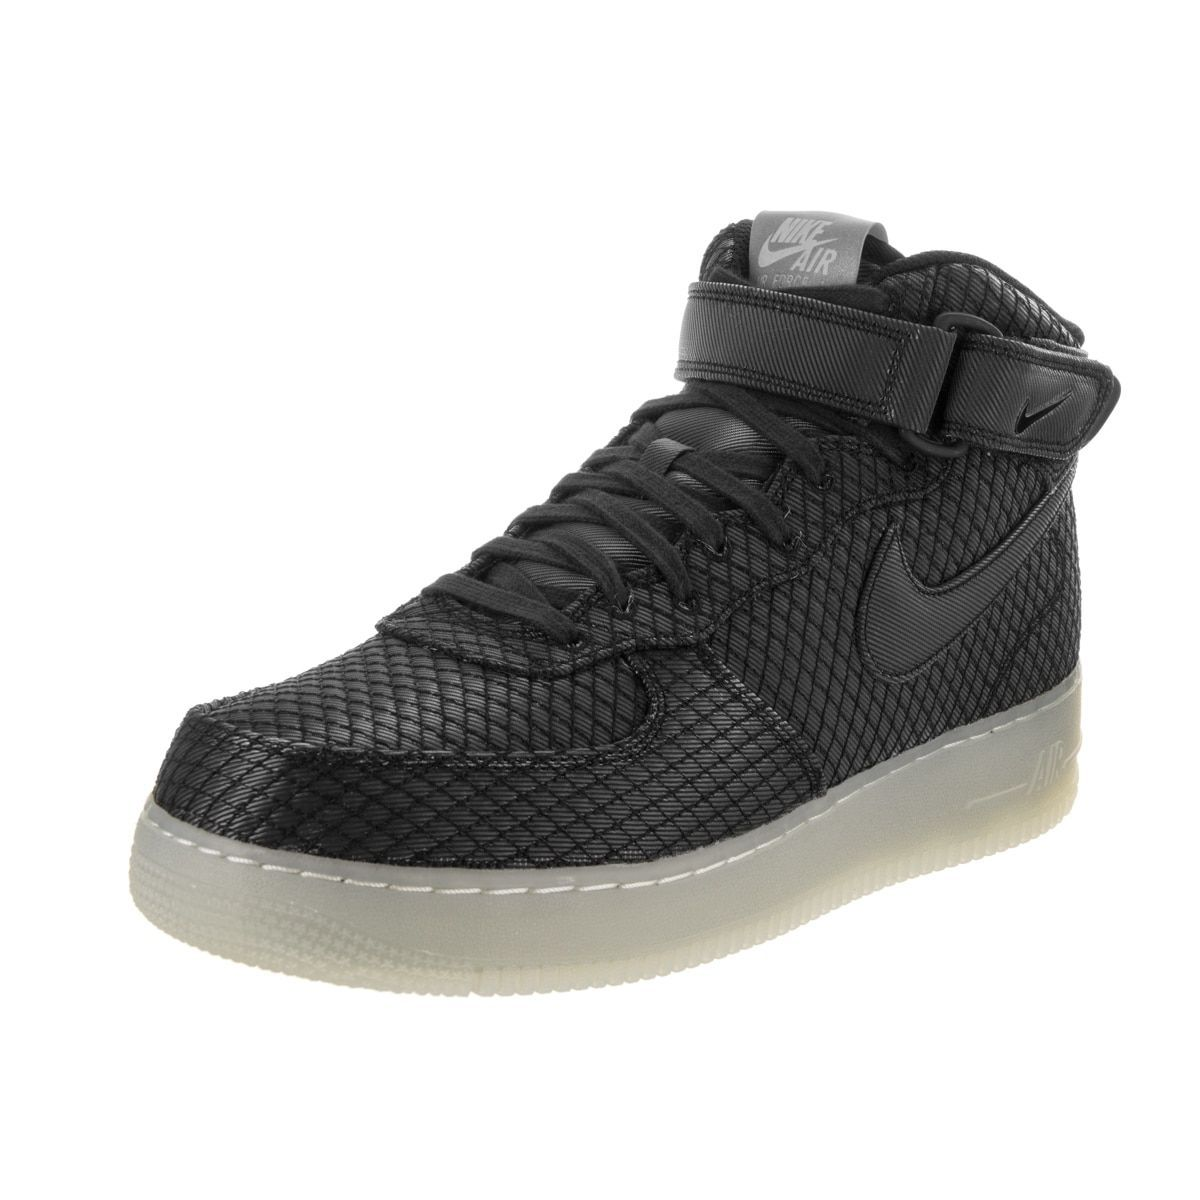 Nike Hombres 07 Air Force 1 Mid' 07 Hombres Lv8 Basketball Zapatos Productos 289f43